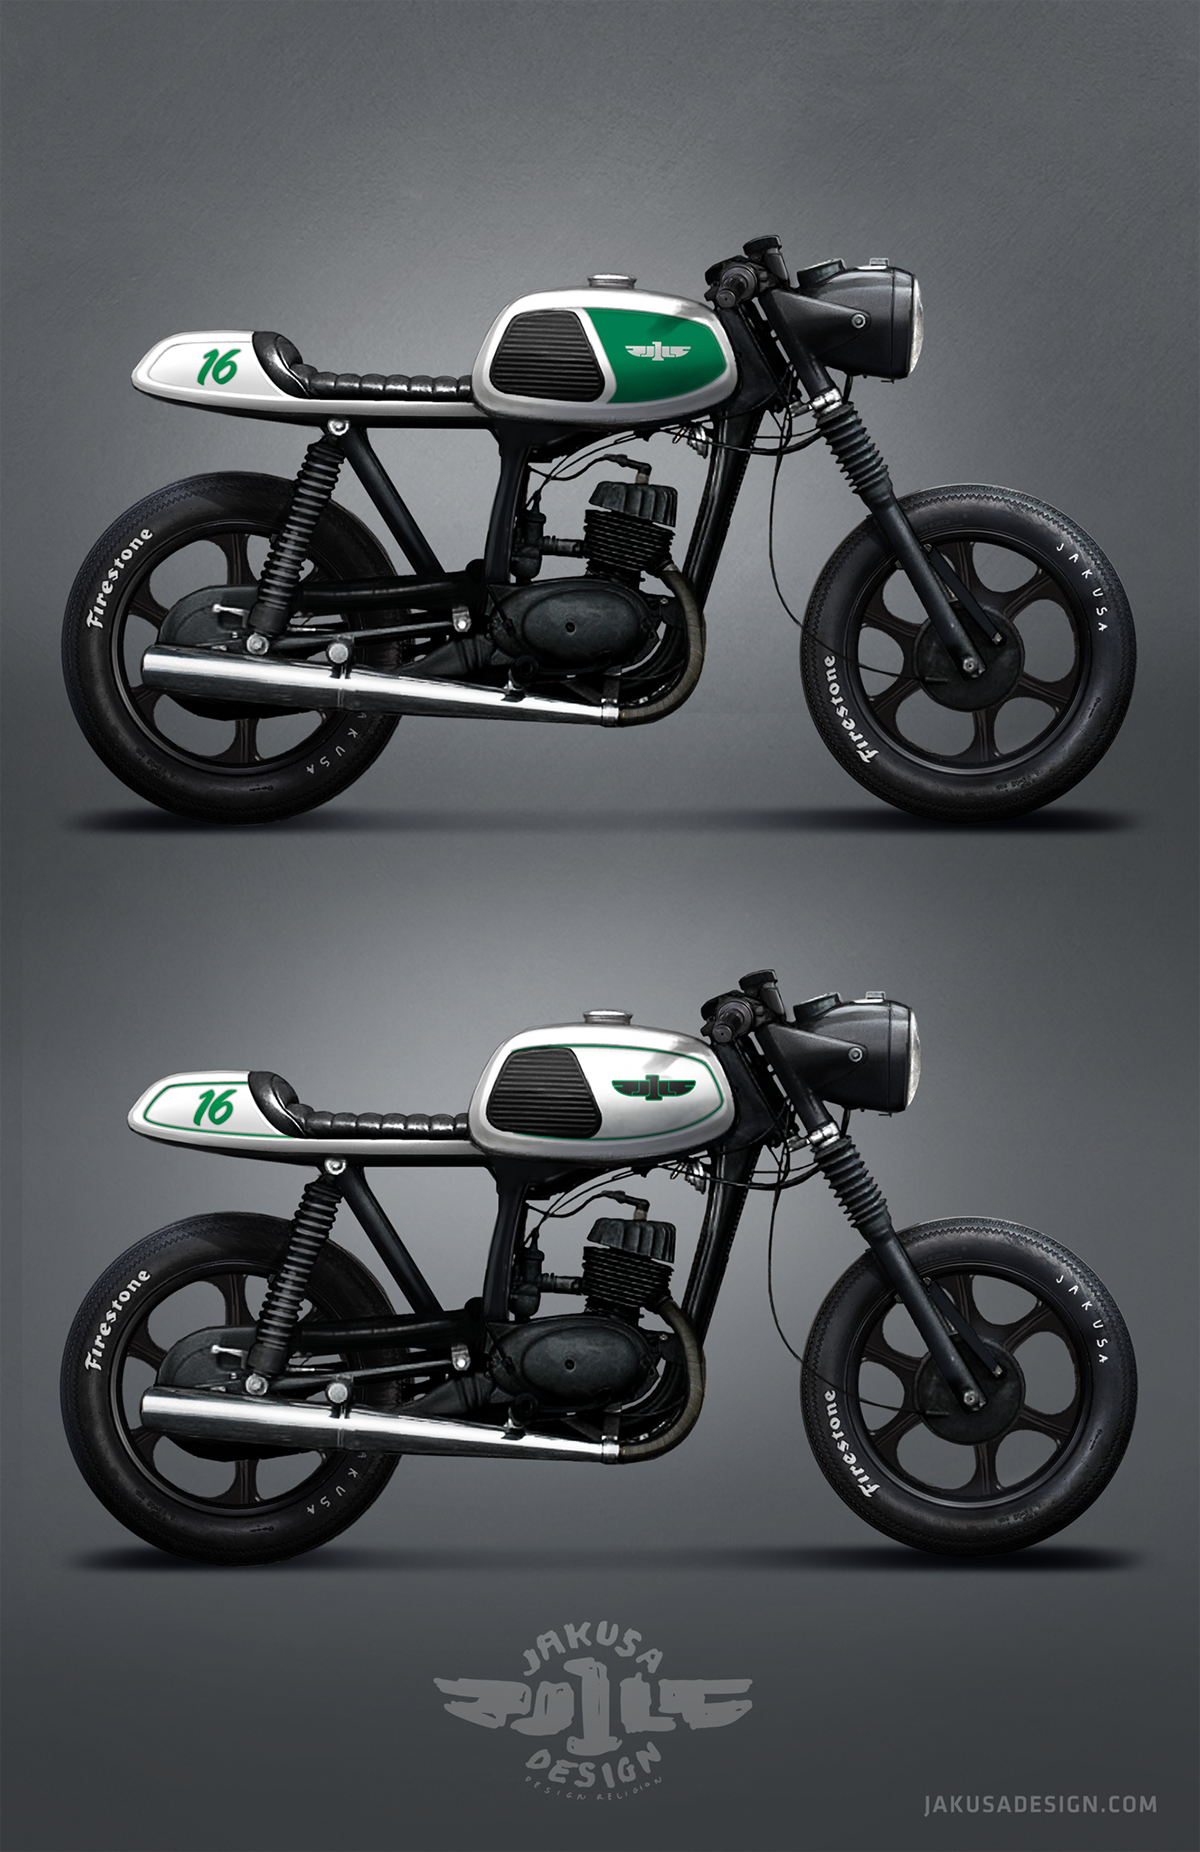 mz ts 150 cafe racer on behance bike shack pinterest motorrad oldtimer autos und motorrad. Black Bedroom Furniture Sets. Home Design Ideas